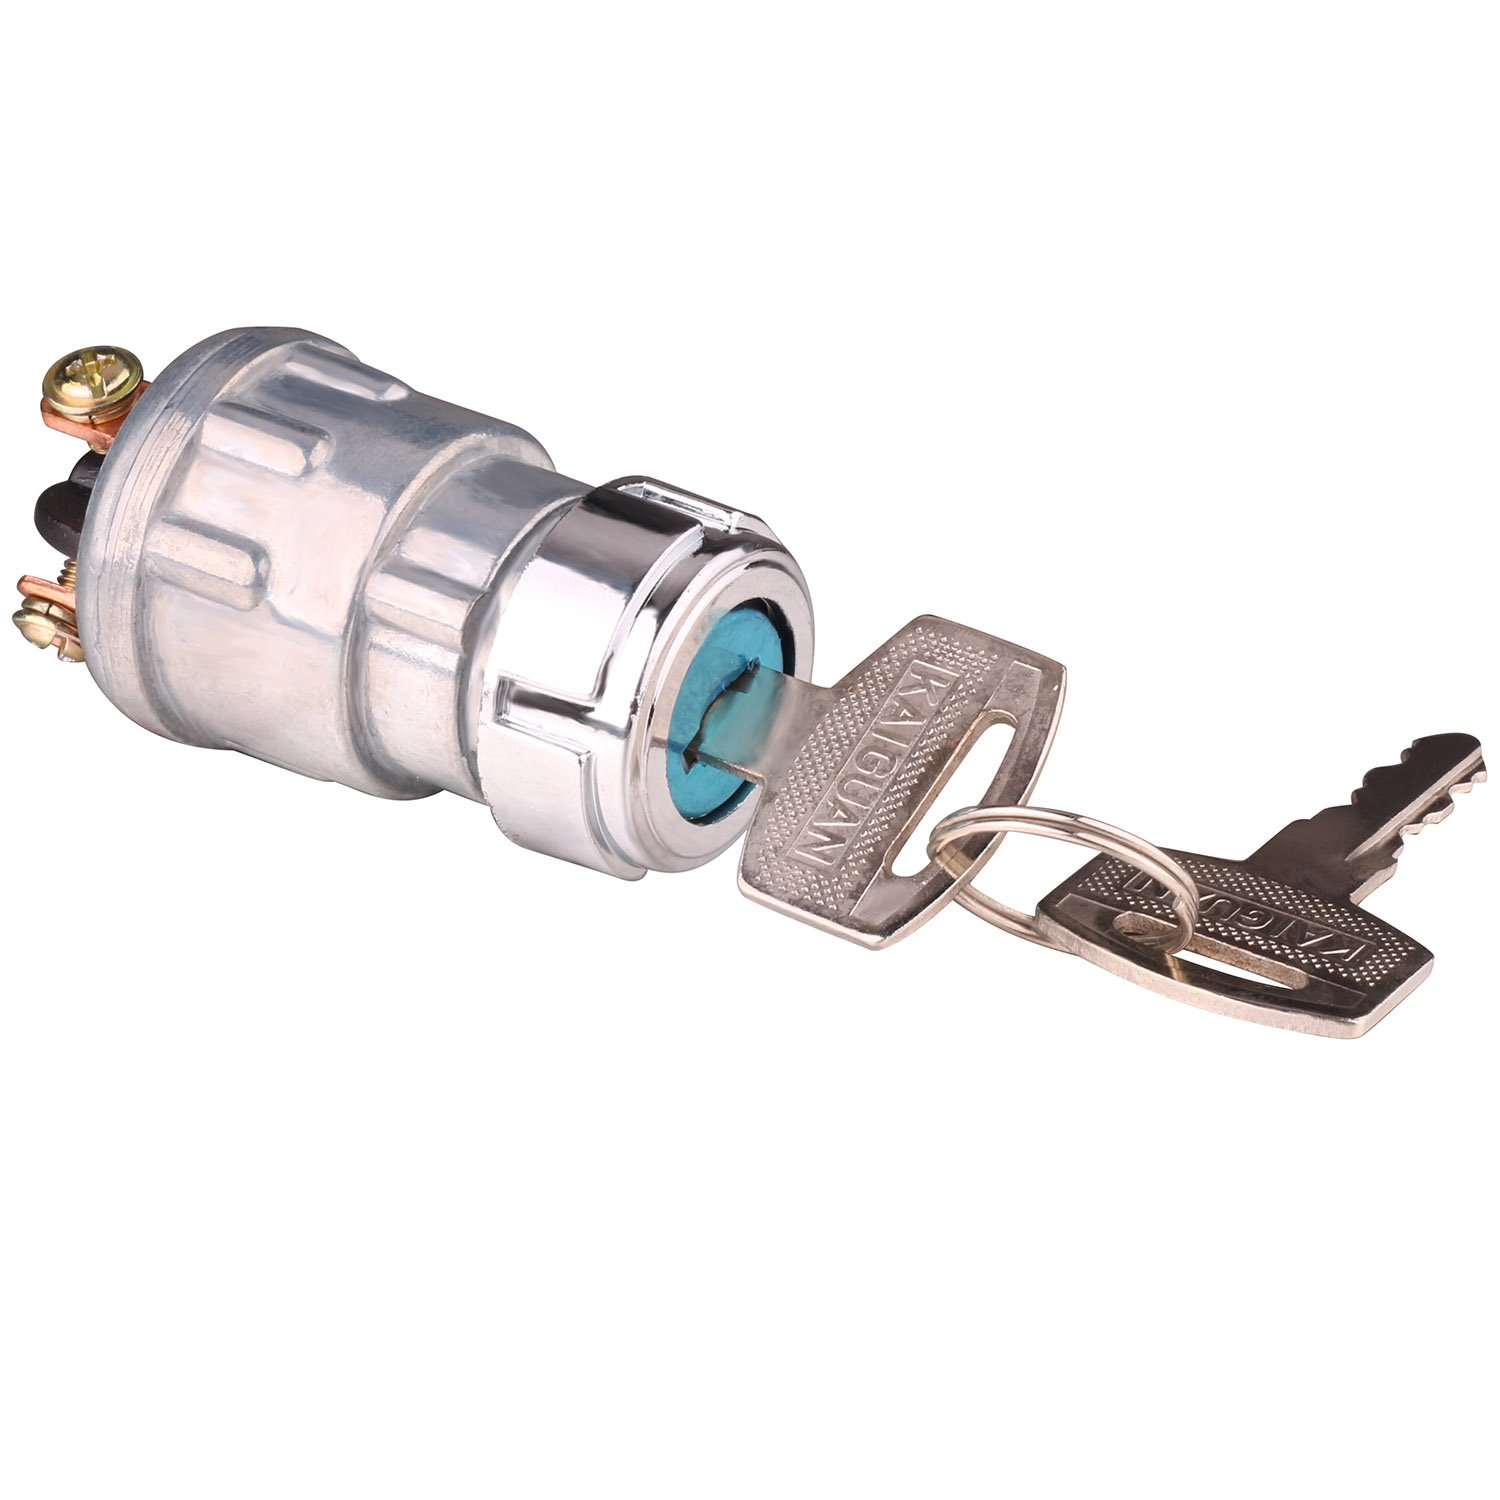 Ignition Switch With Key Lenmumu Universal 3 Wire Here Is Your Wiring Diagram The Starter Feature Engine For Car Motorcycle Tractor Forklift Truck Scooter Trailer